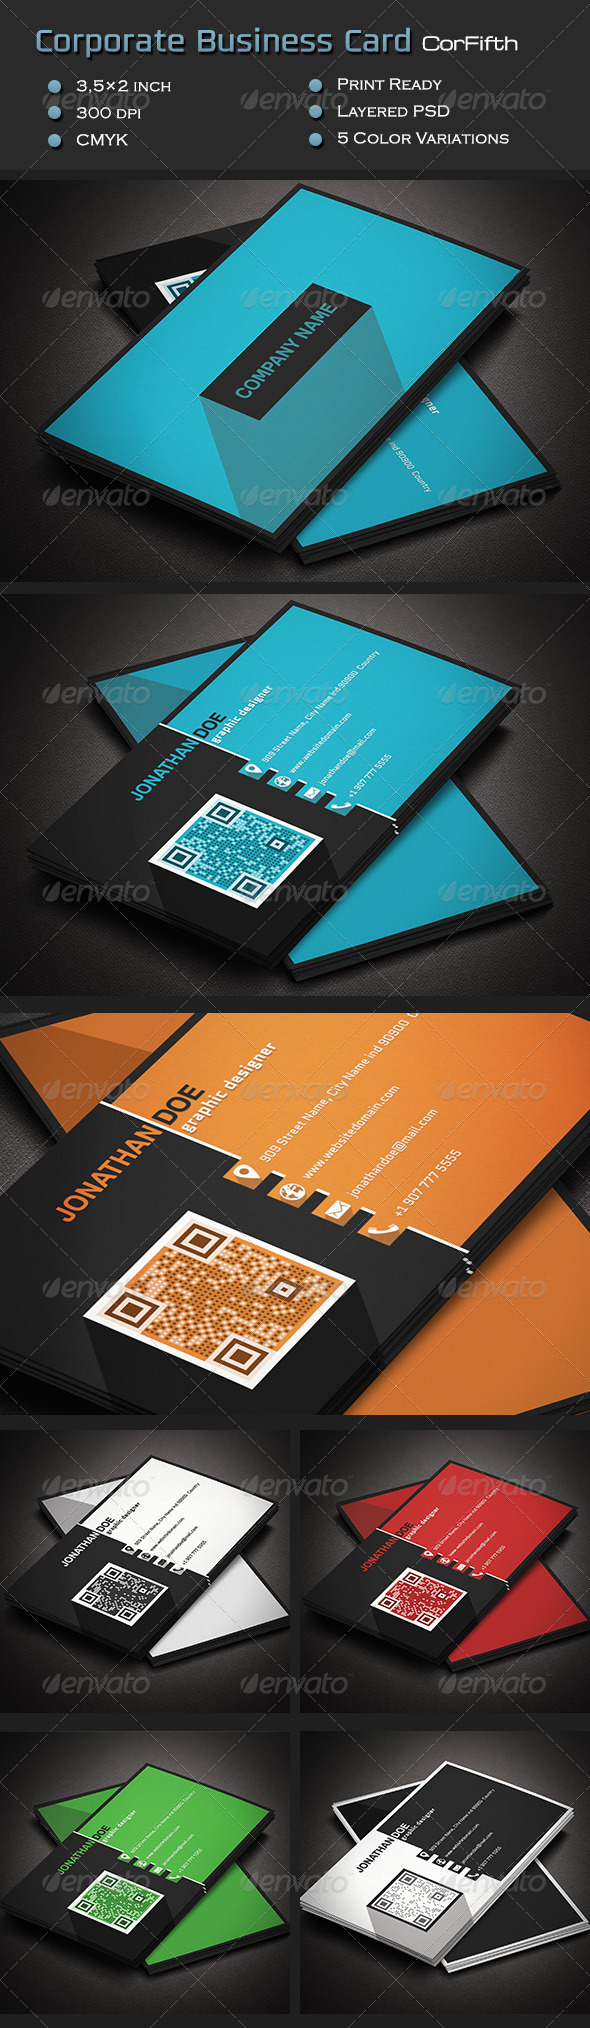 GraphicRiver Corporate Business Card CorFifth 7101645